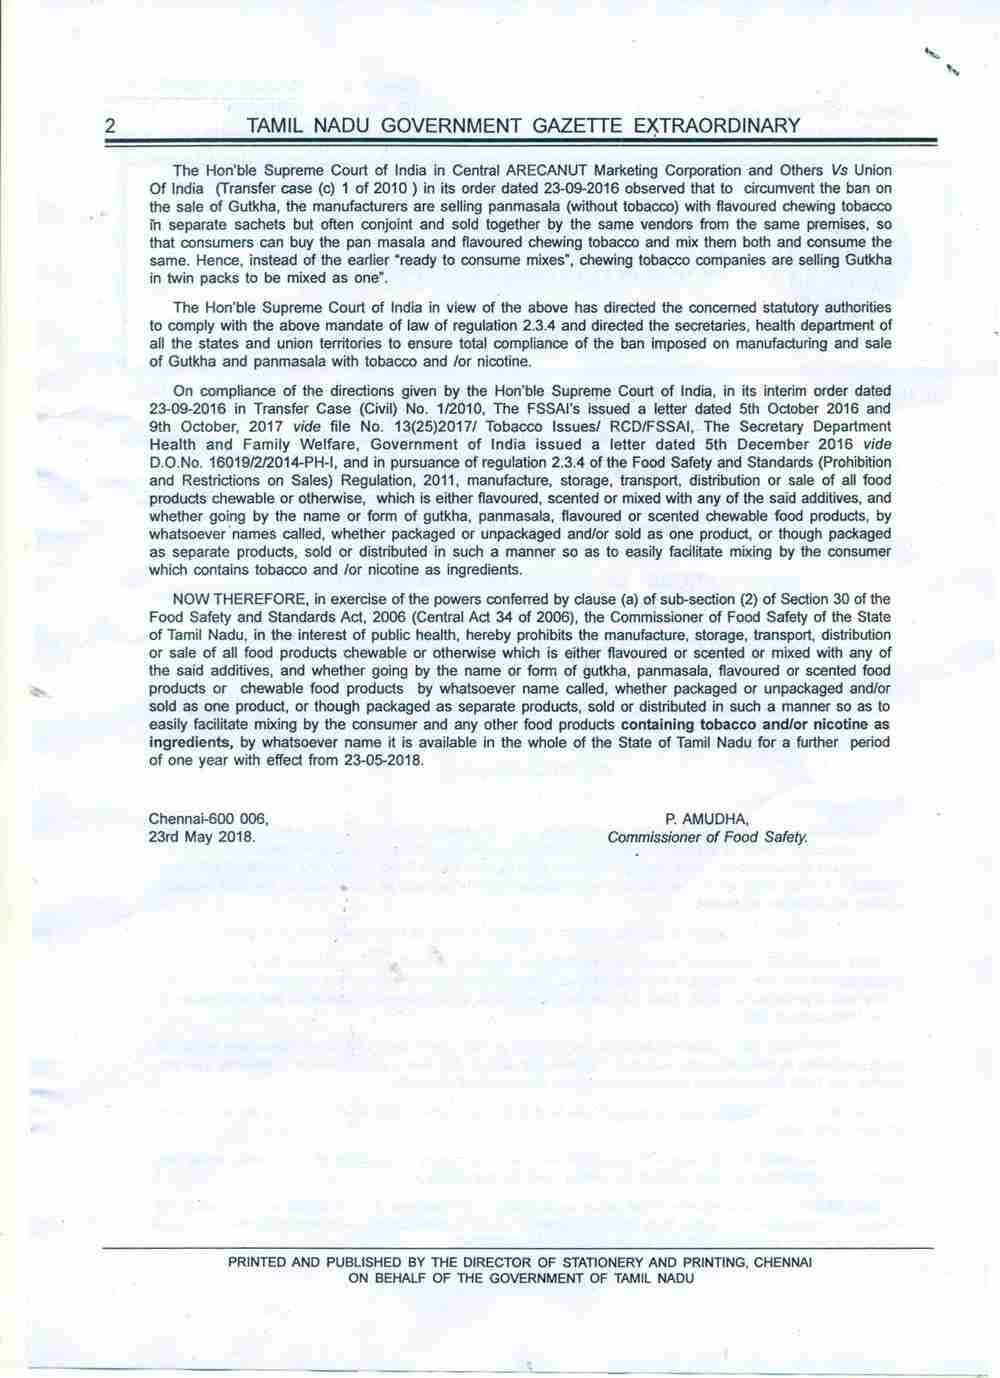 Ban Notification of TN dated 23.05.2018_Page_2